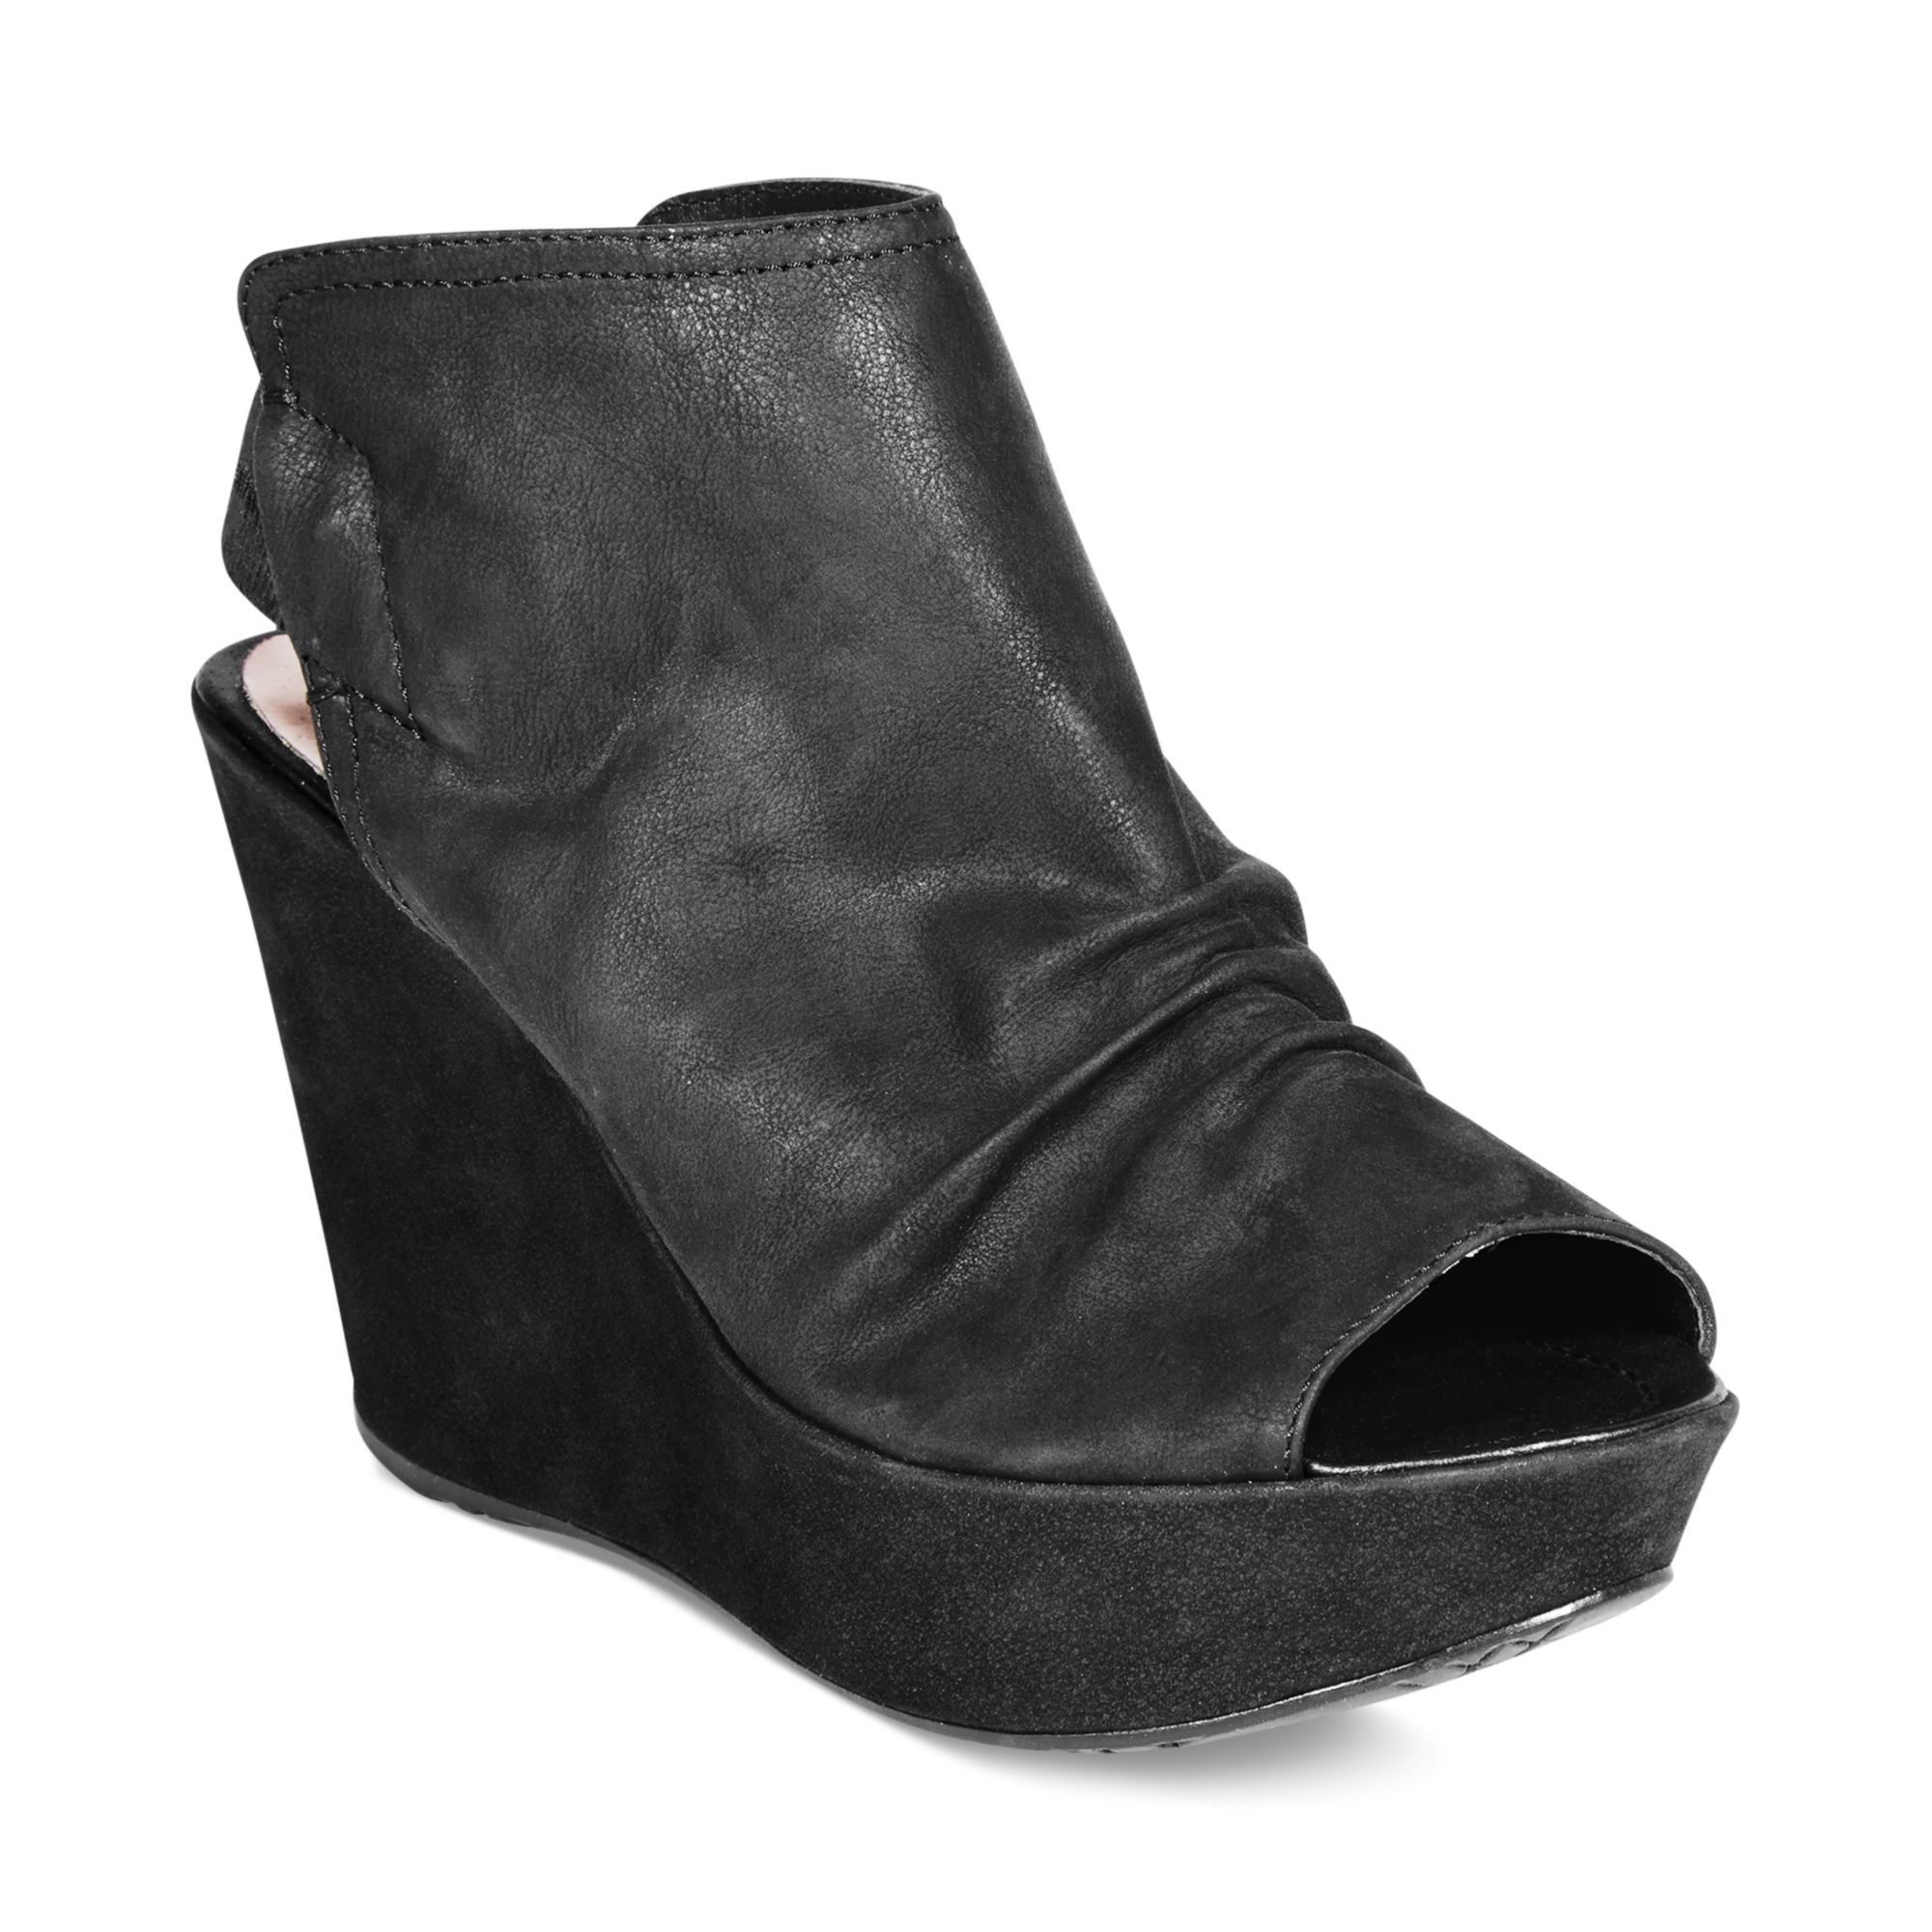 Kenneth Cole Reaction Womens Soul Search Platform Wedge